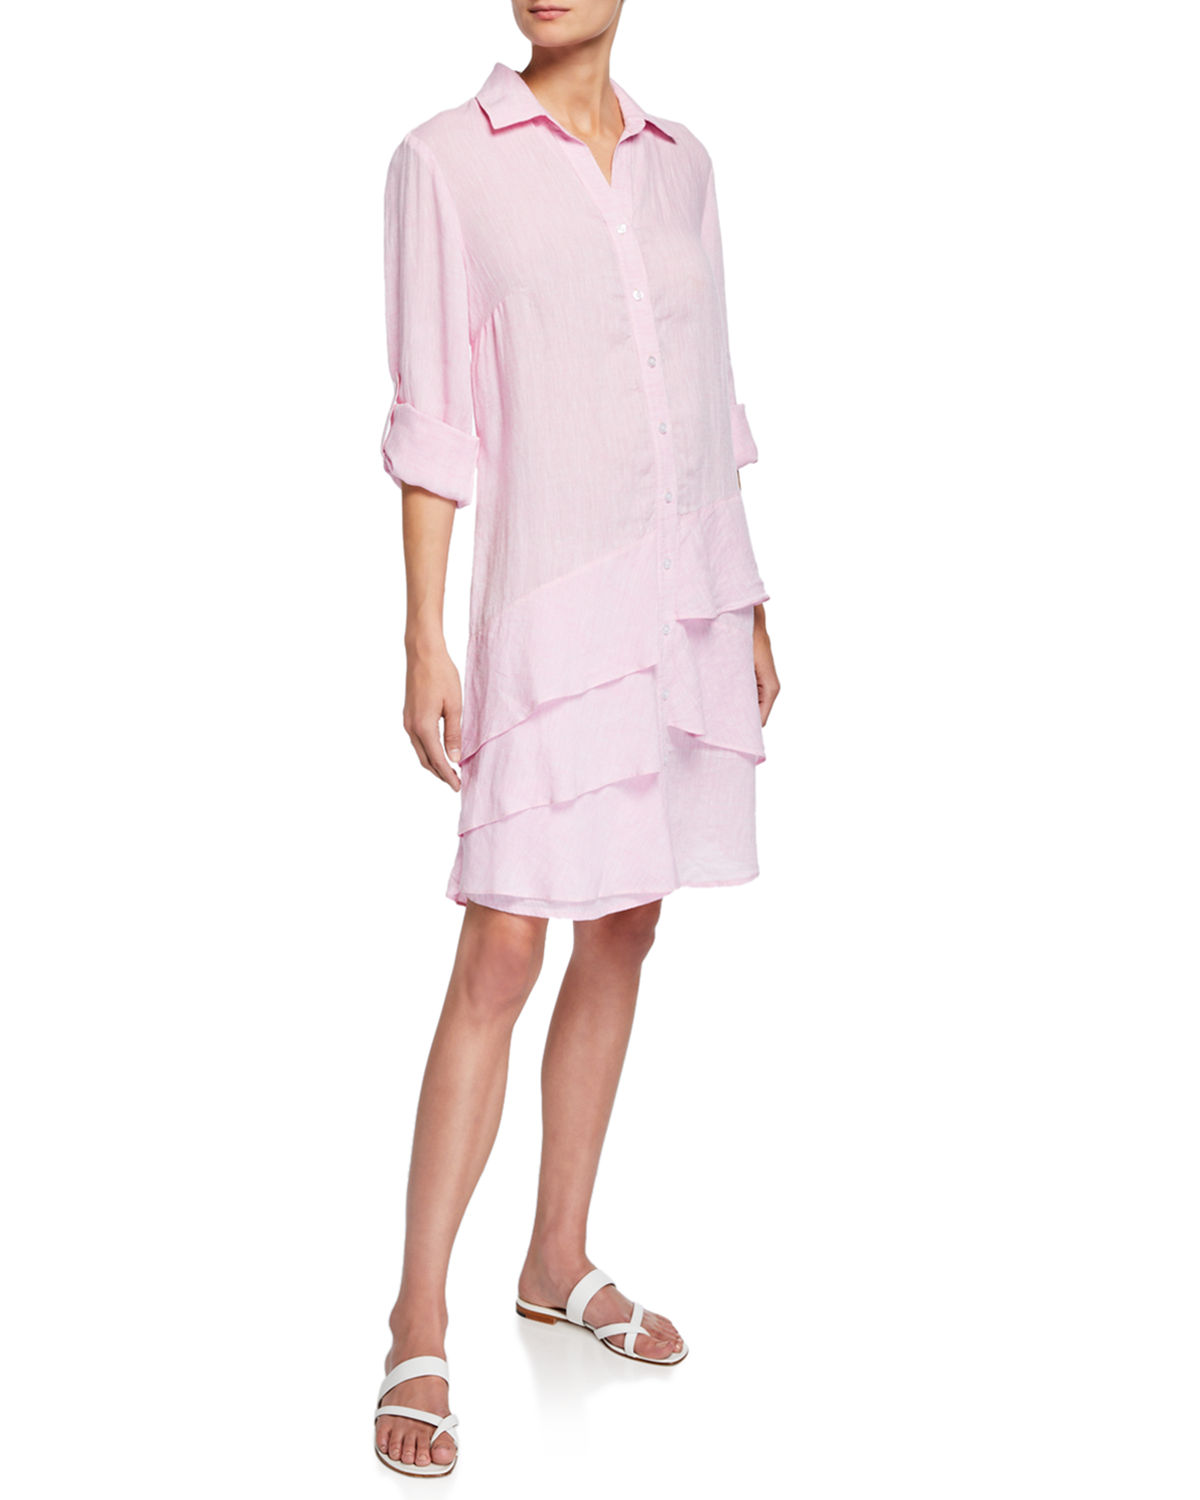 Finley Dresses PLUS SIZE JENNA WASHED LINEN SHIRTDRESS WITH TIERED RUFFLES